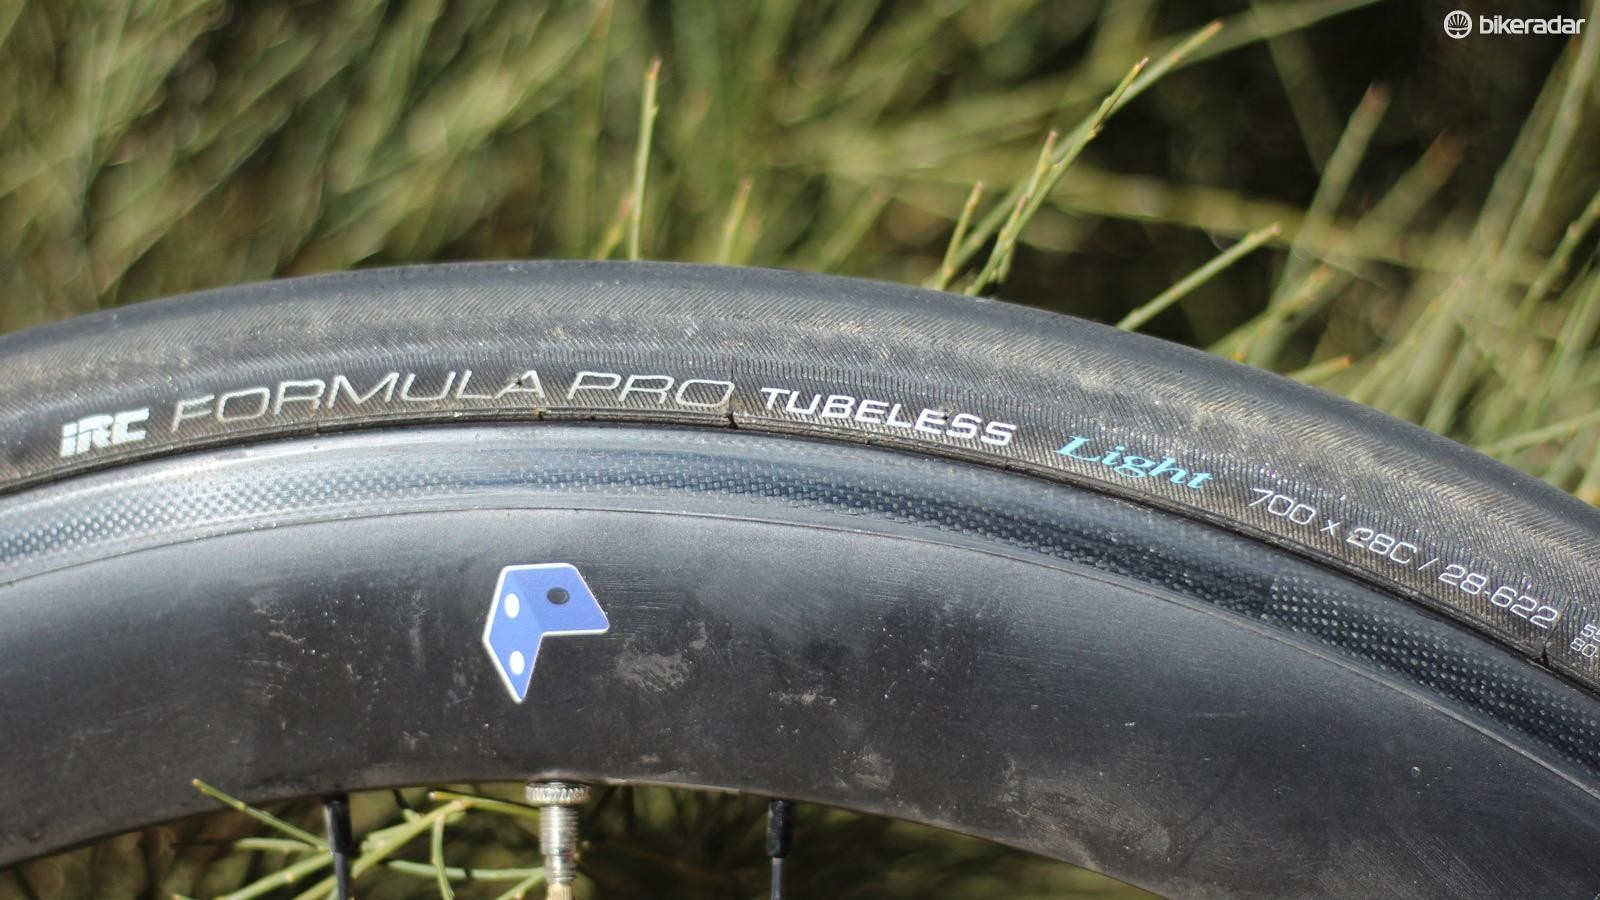 The IRC Road Tubeless Light comes in a few widths. This is the 28mm